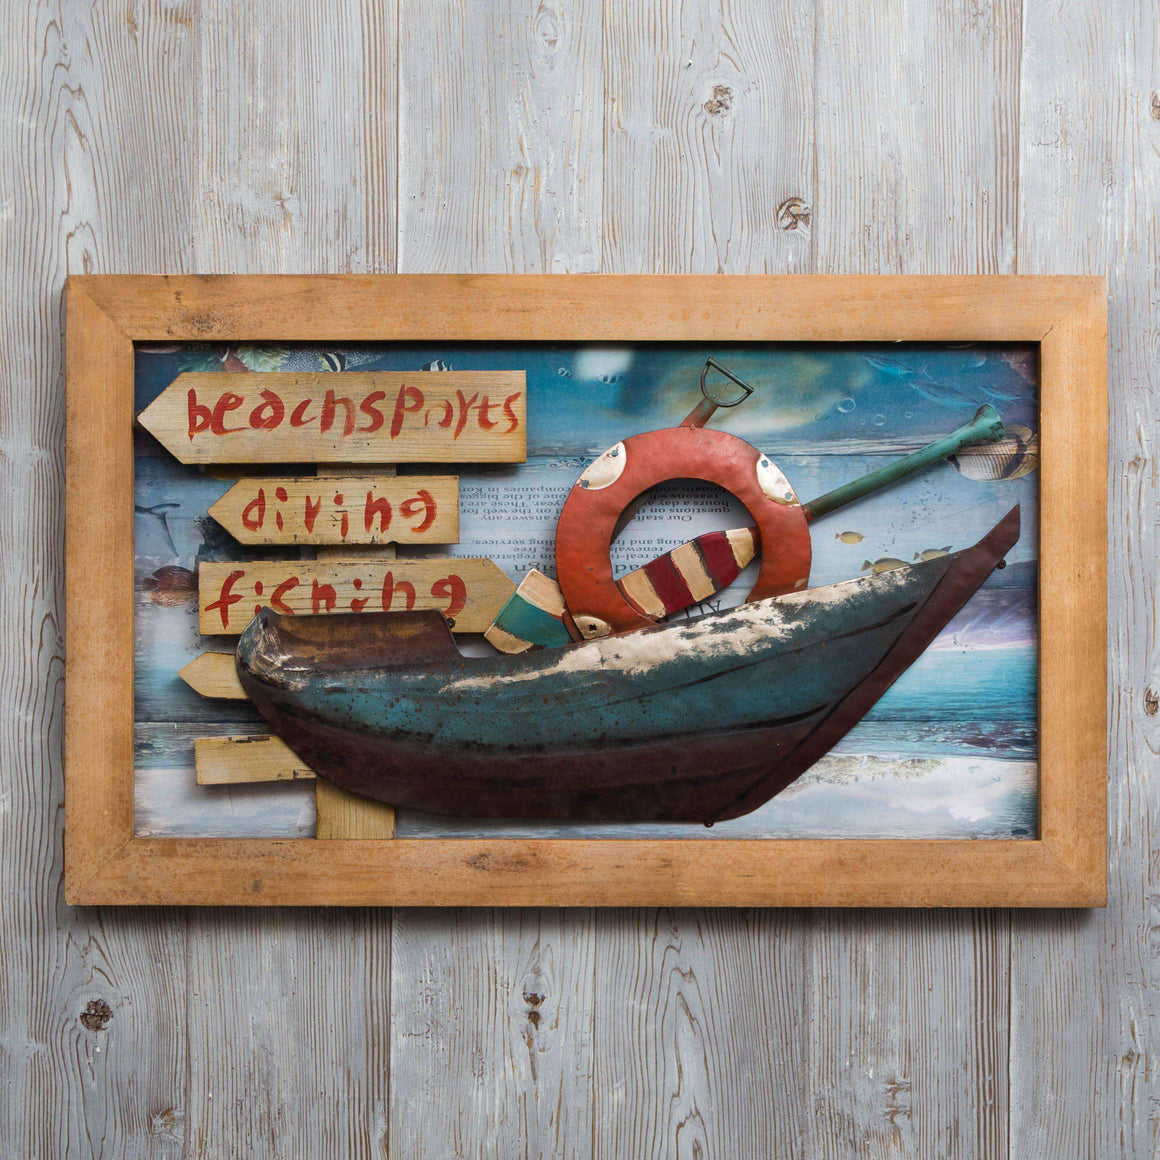 Beach Life - Print on Wood